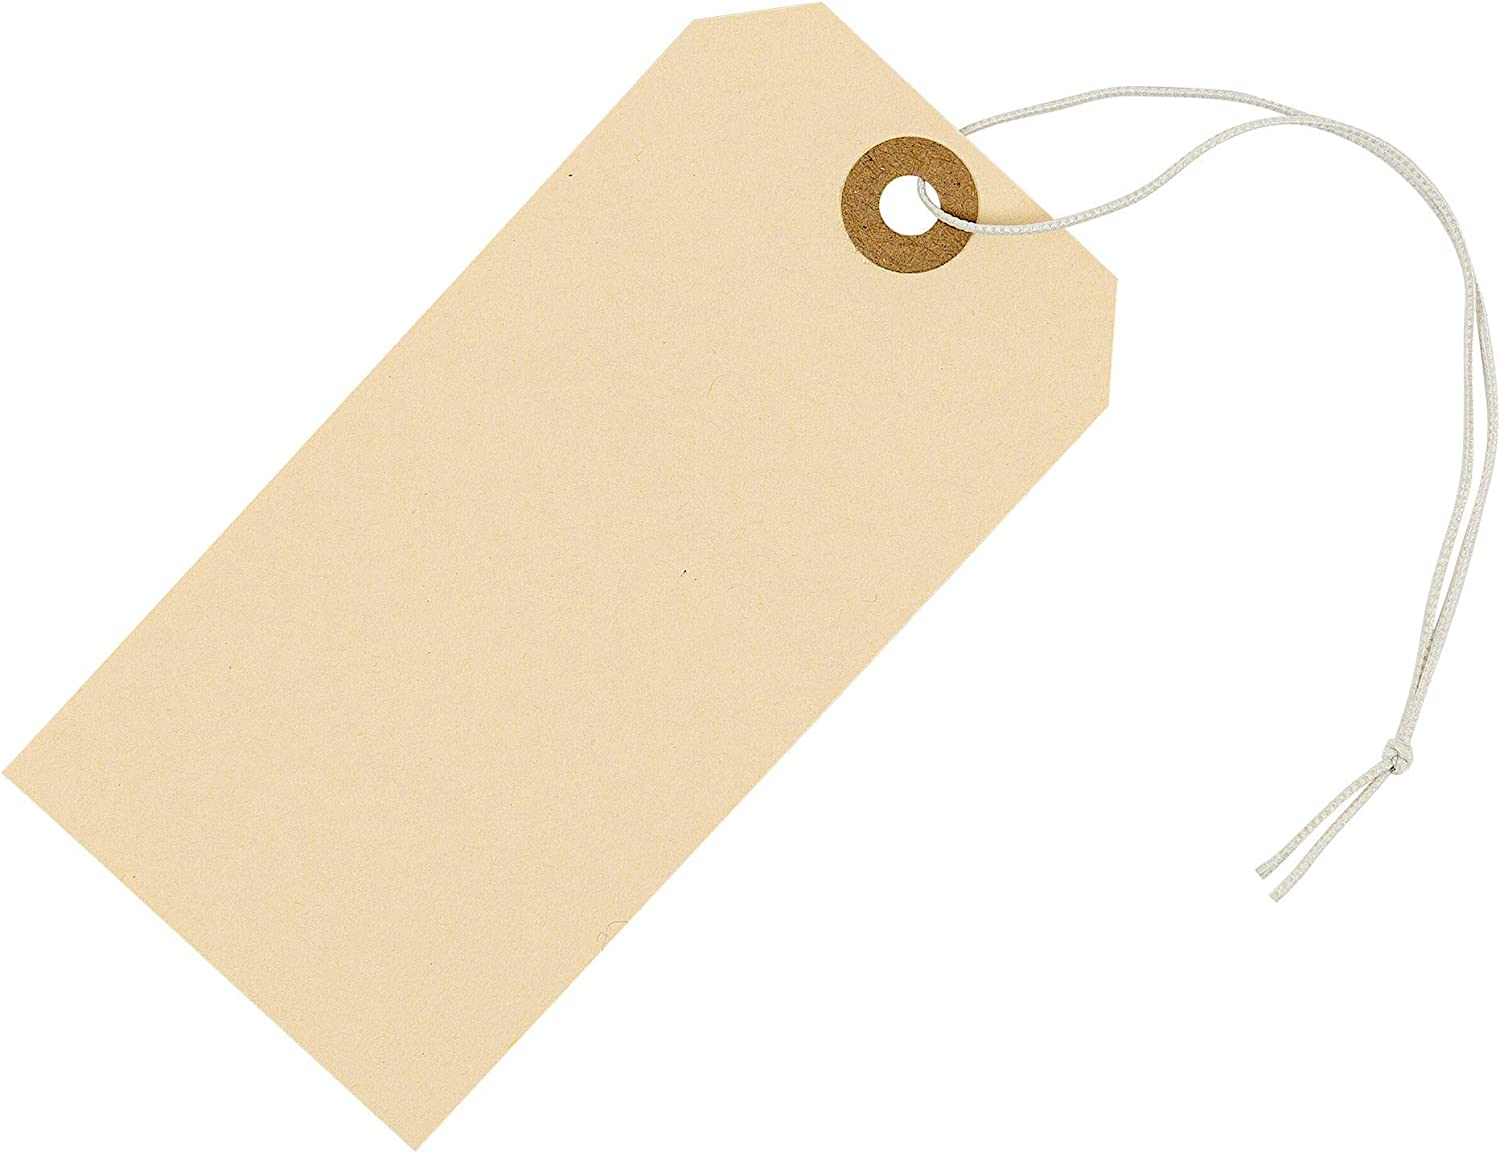 Tags with Elastic String Attached 4 3/4